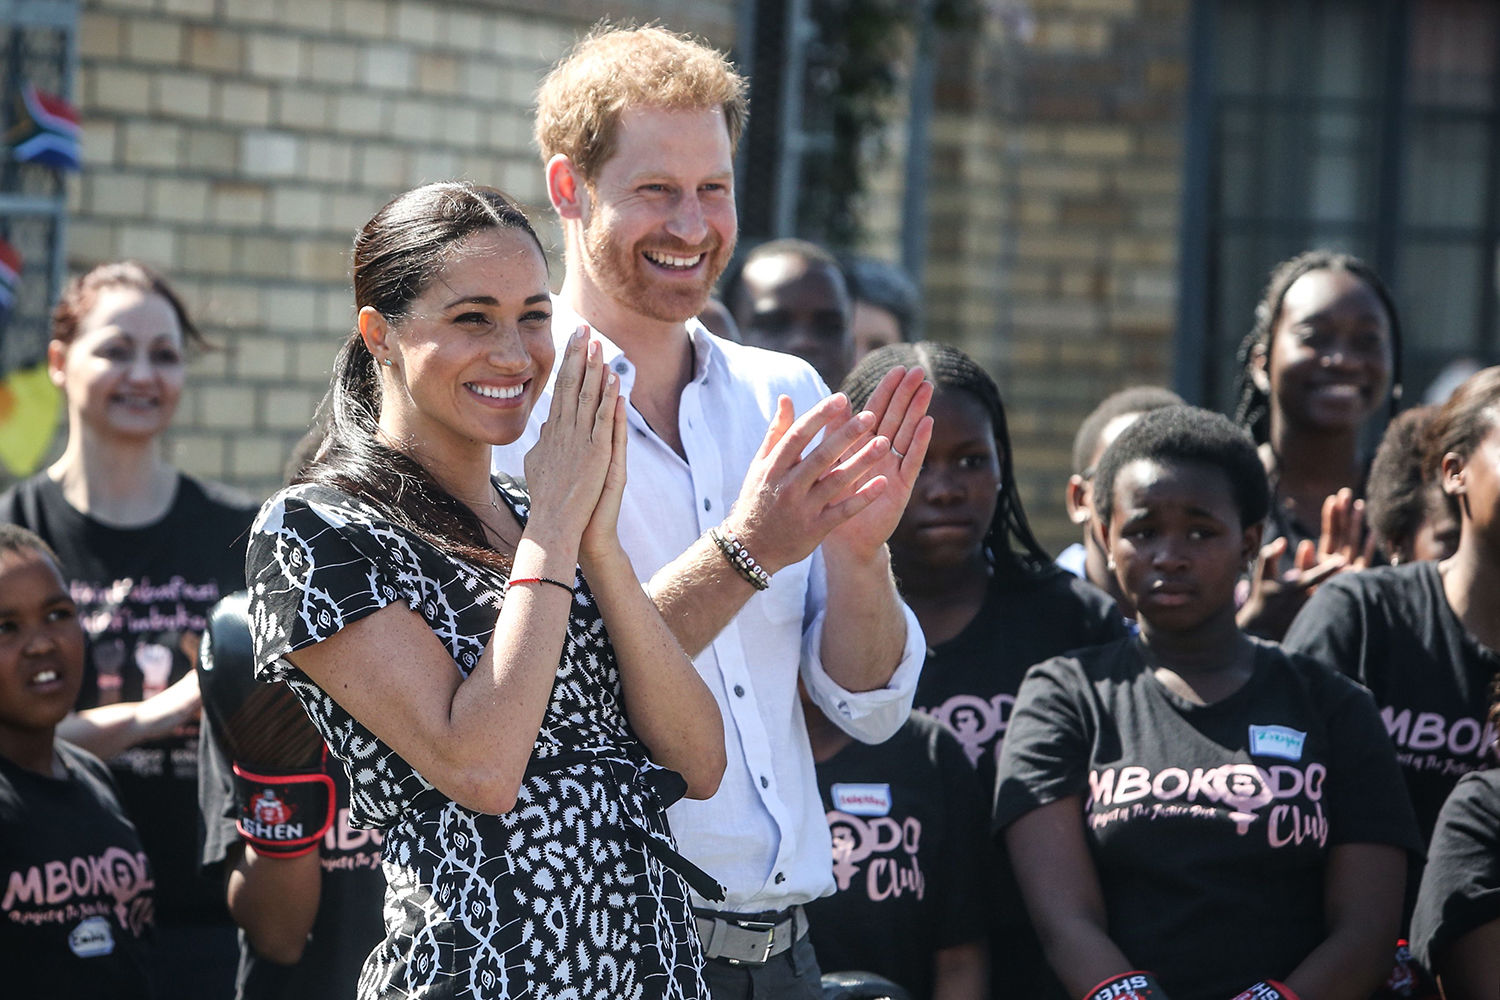 Prince Harry Wants To Move To Africa With His Wife